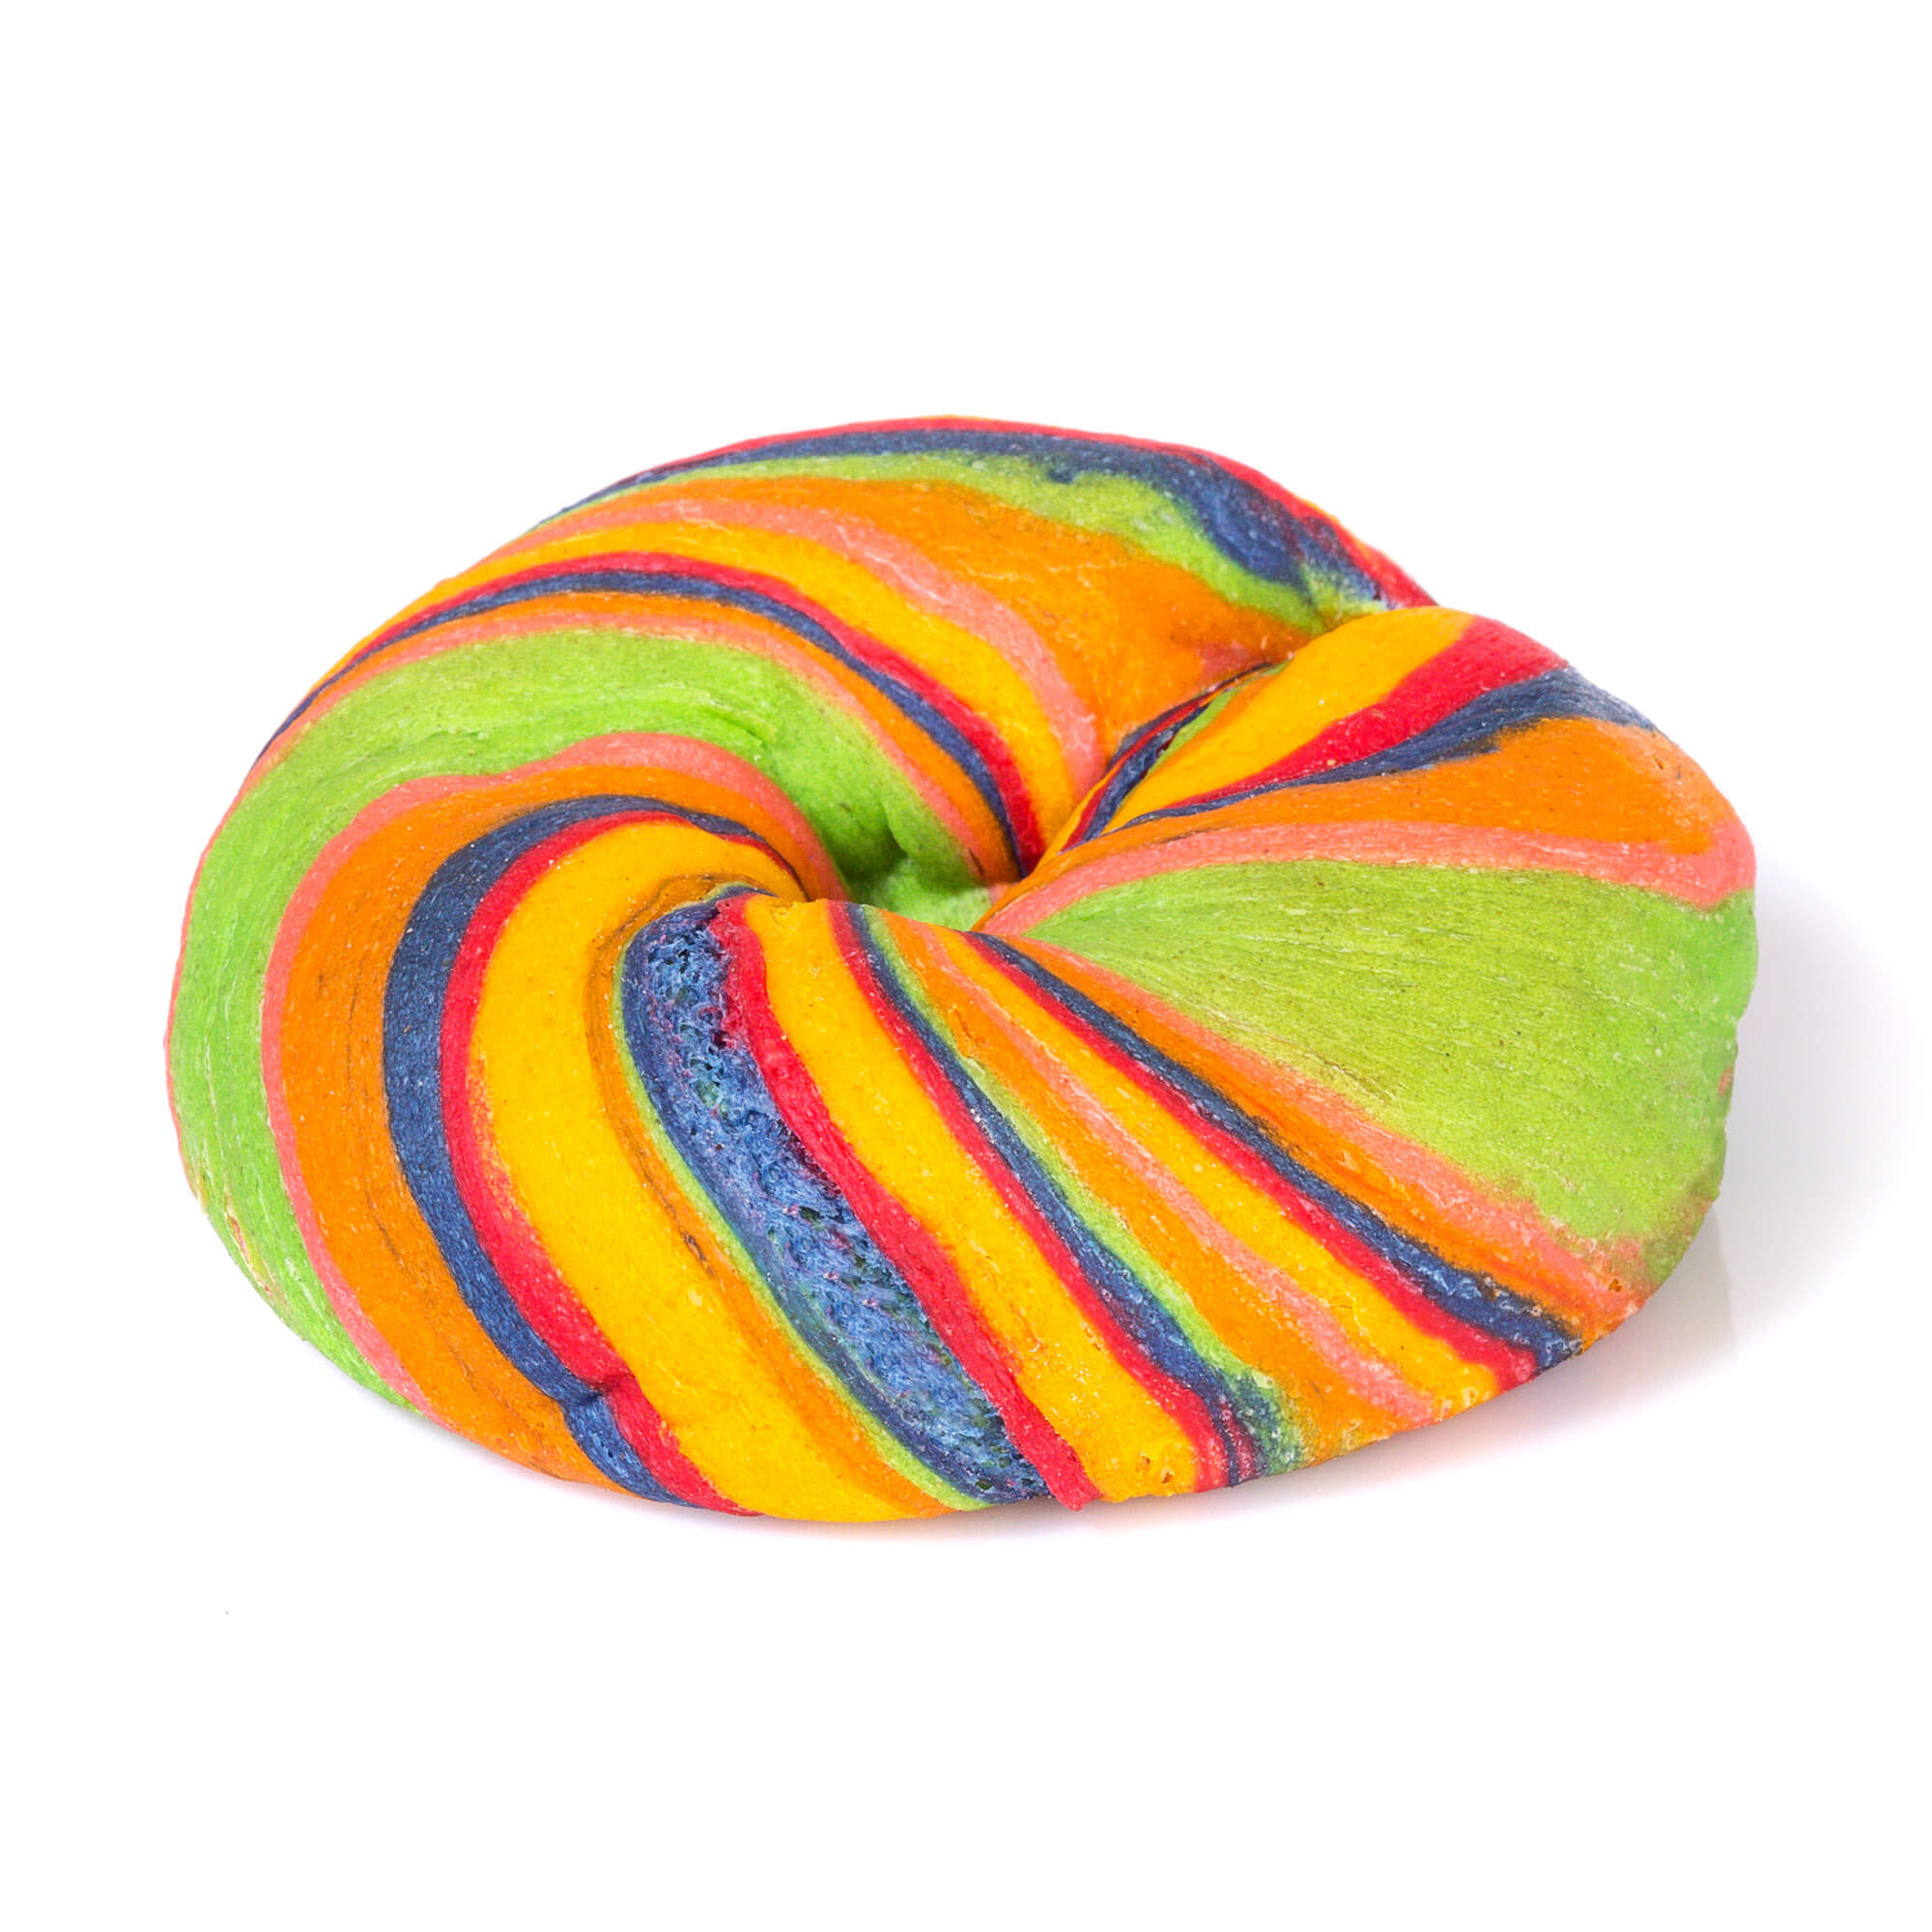 City Pantry - Rainbow Bagels - The Breakfast Company